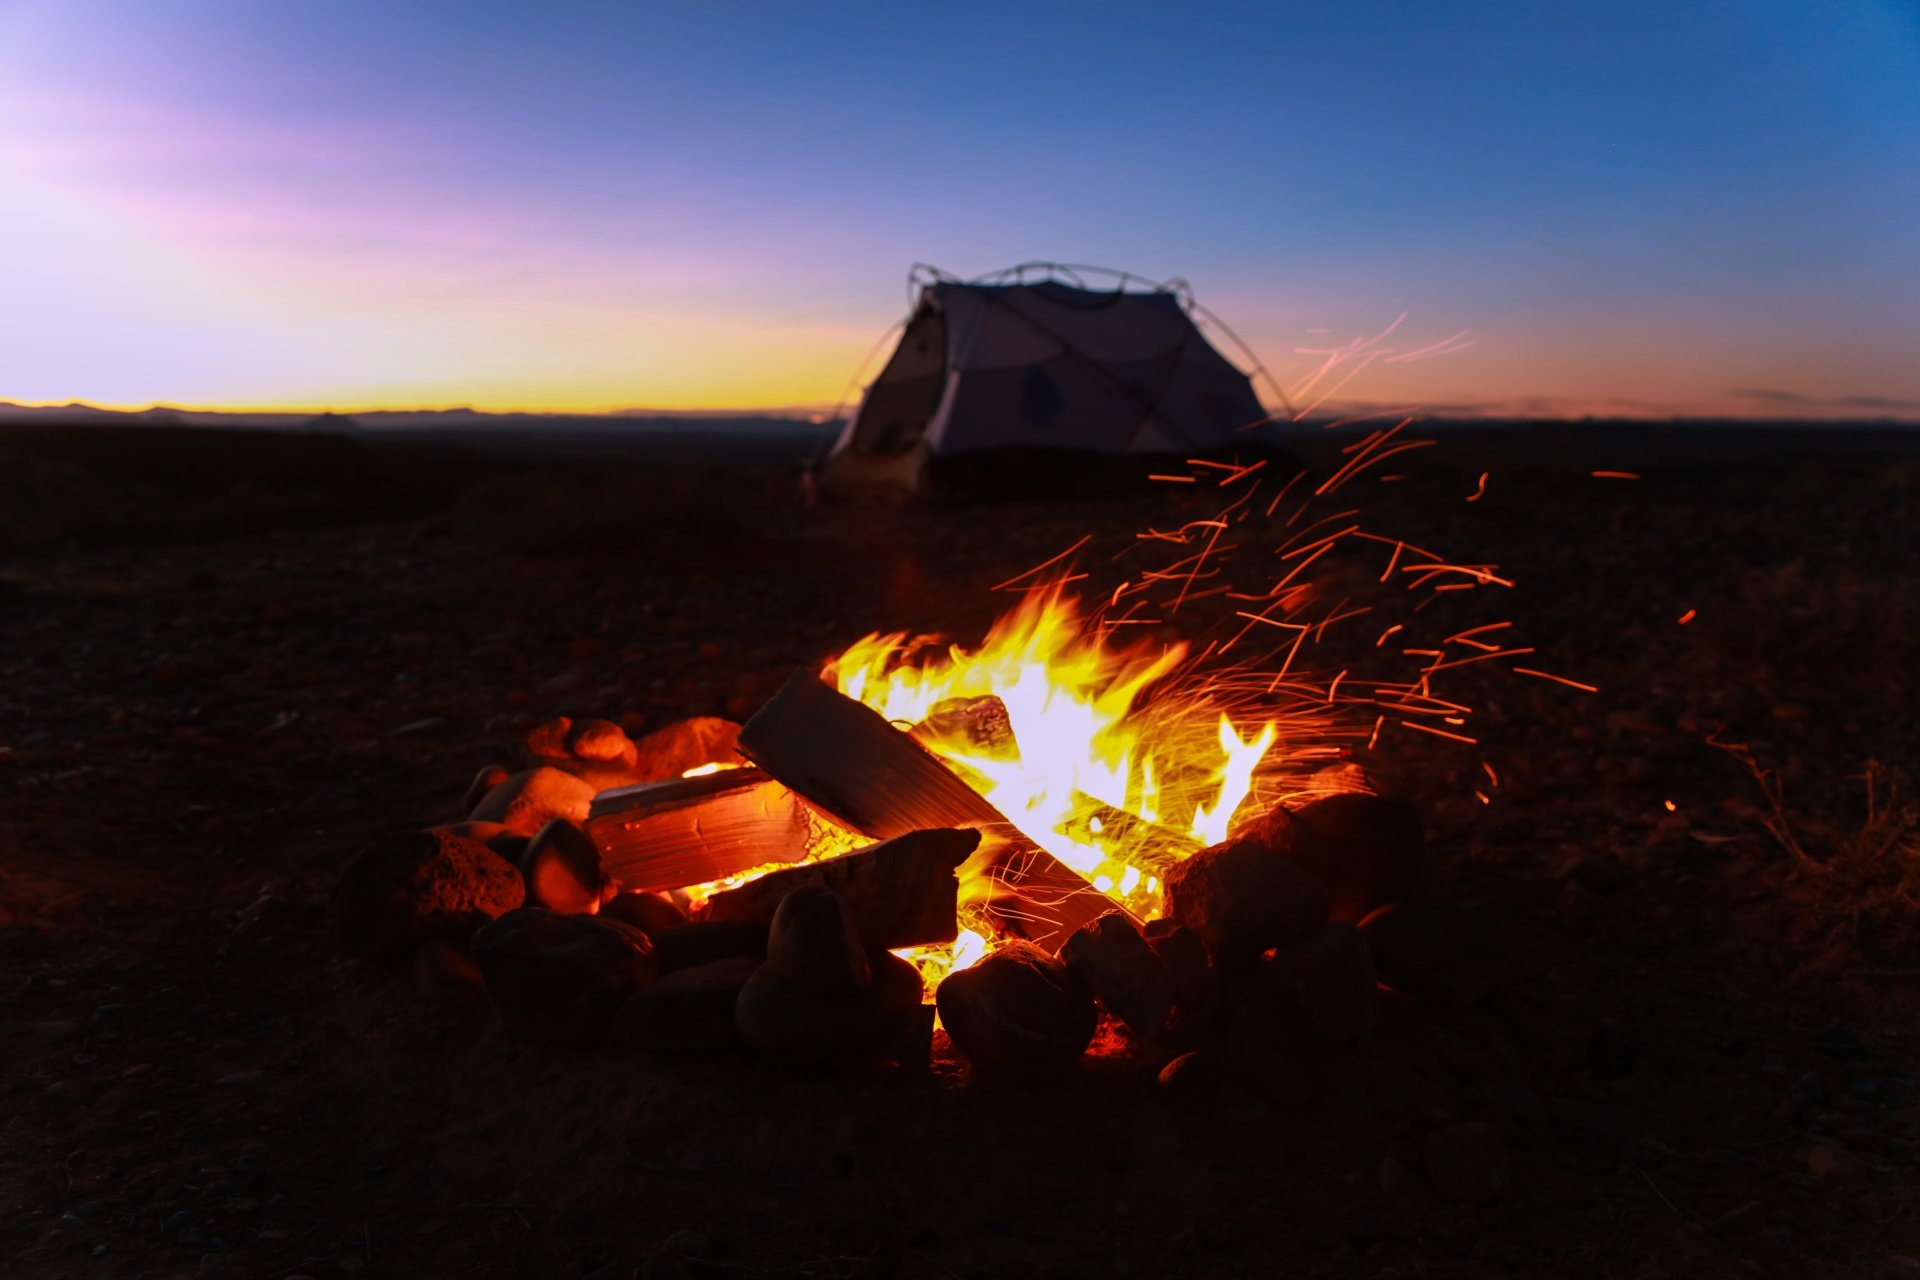 Fall Trees Iphone Wallpaper Campfire At A Campsite 8k Ultra Hd Wallpaper And